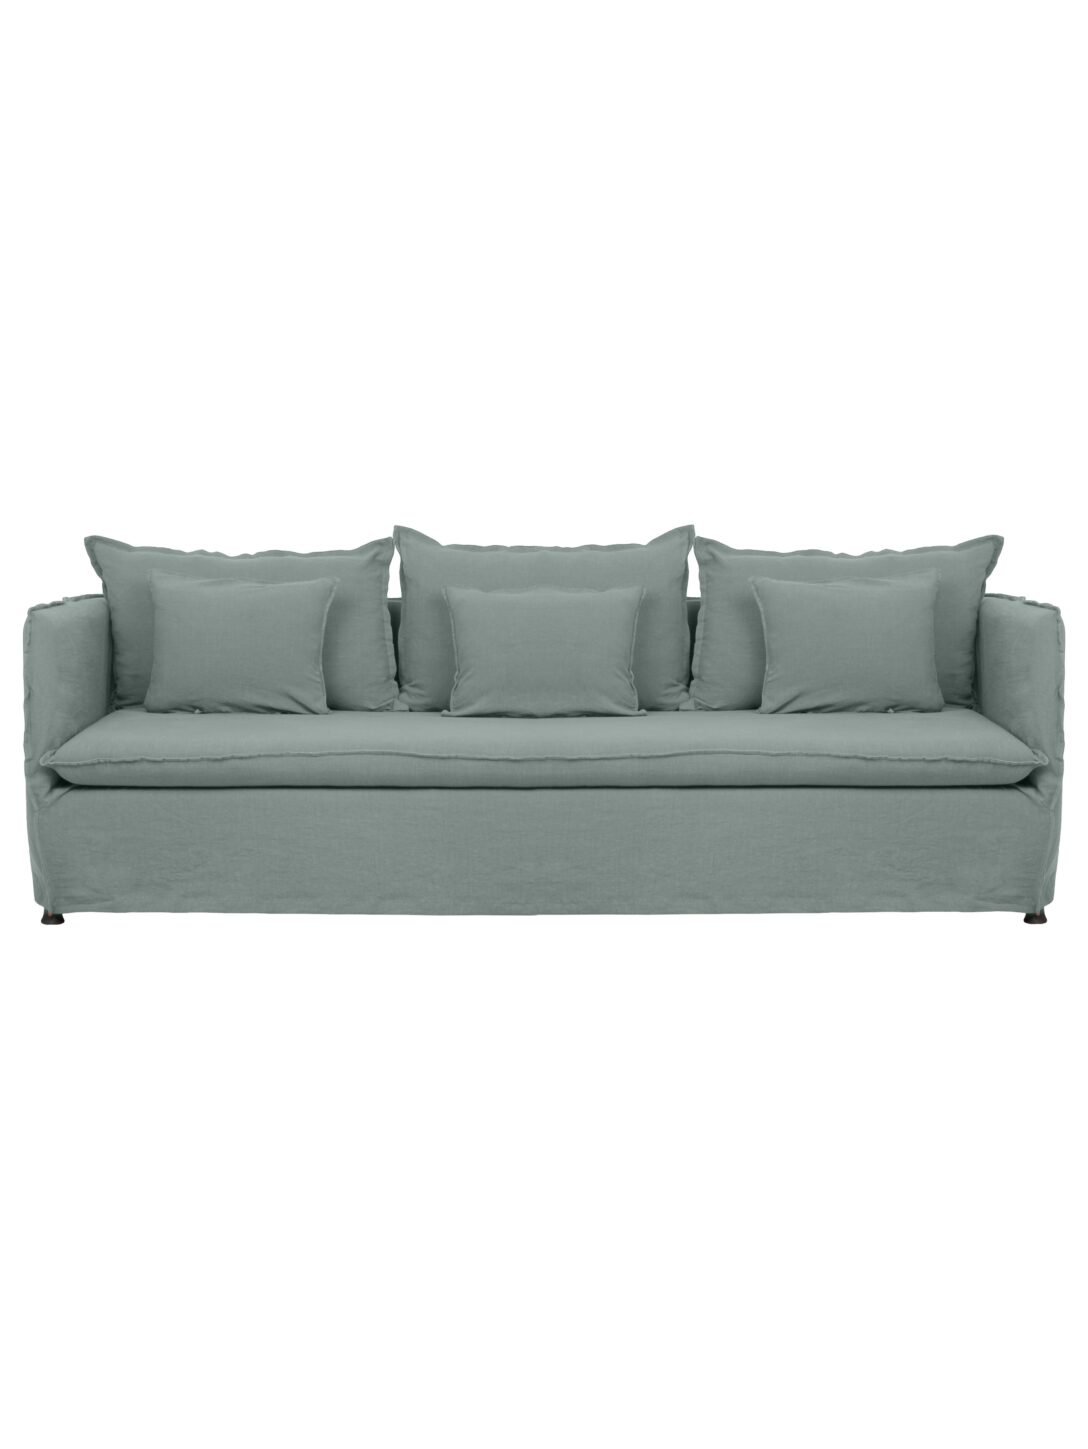 Large Size of Canape Sofa Canap Holi Caravane Antikes Liege Mit Led Big L Form Mondo Comfortmaster Xxl Le Corbusier Boxspring Schlaffunktion Zweisitzer Alternatives De Sede Sofa Canape Sofa